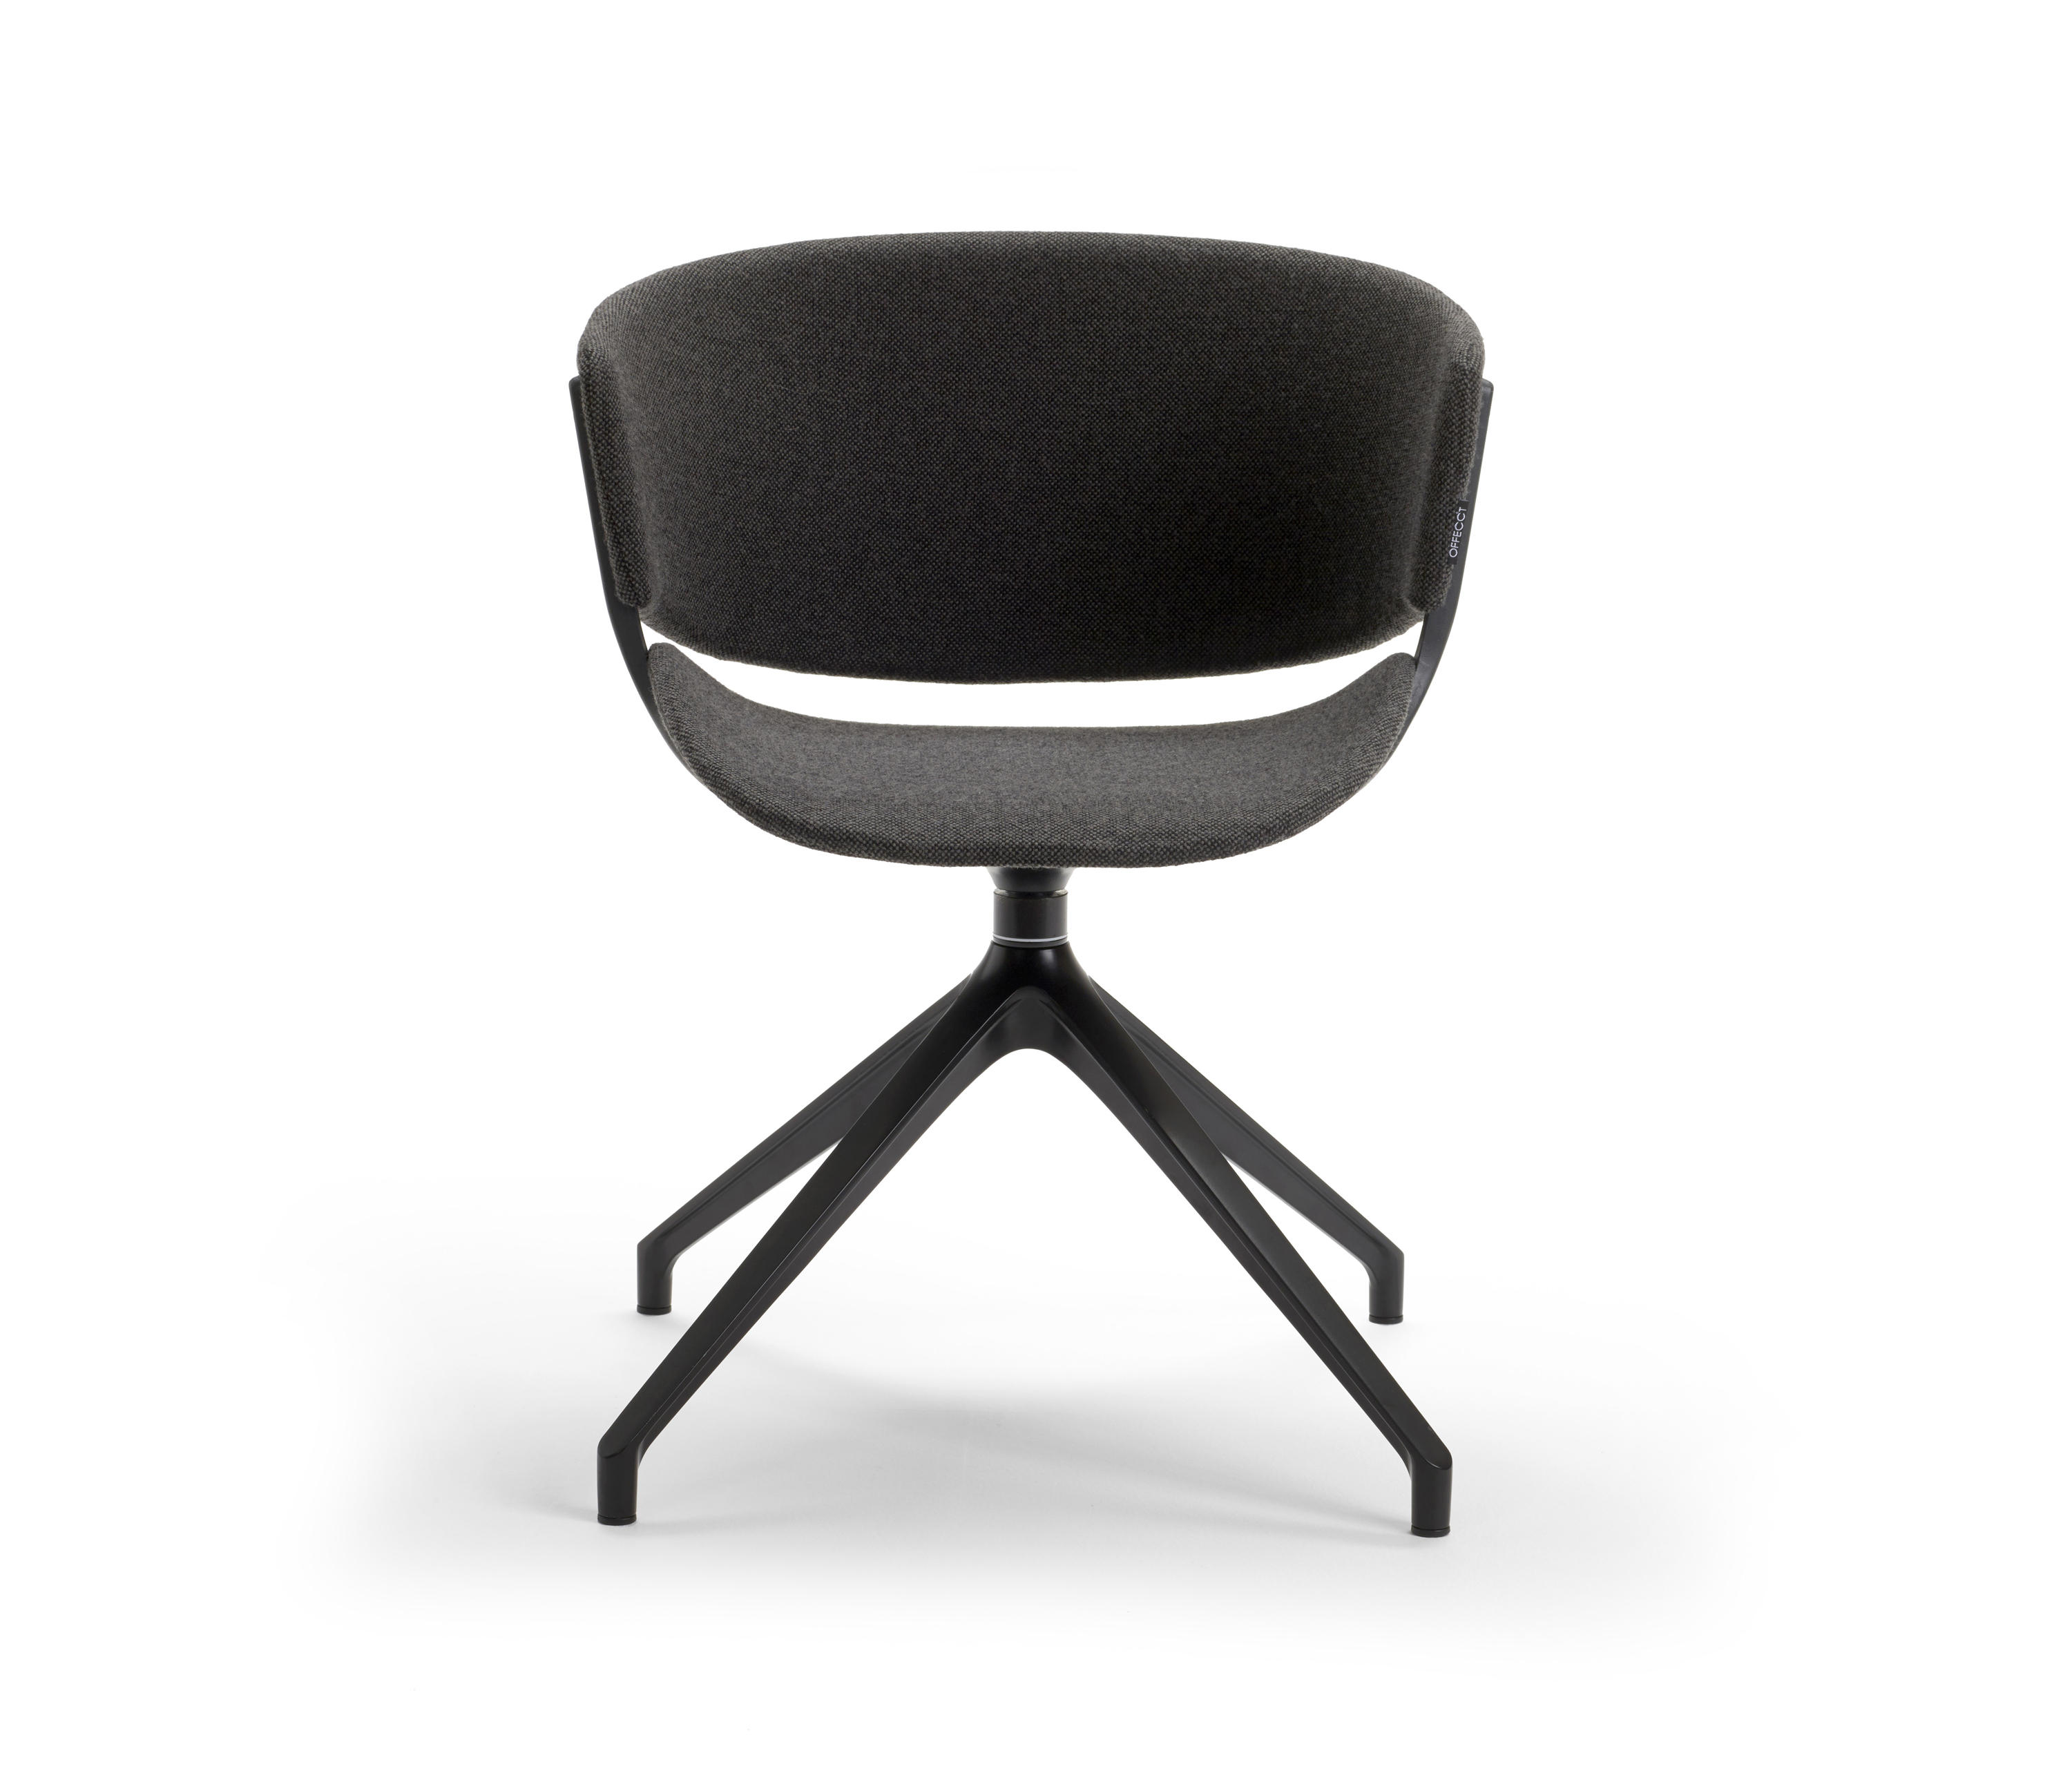 Phoenix Chair by Luca Nichetto for Offecct